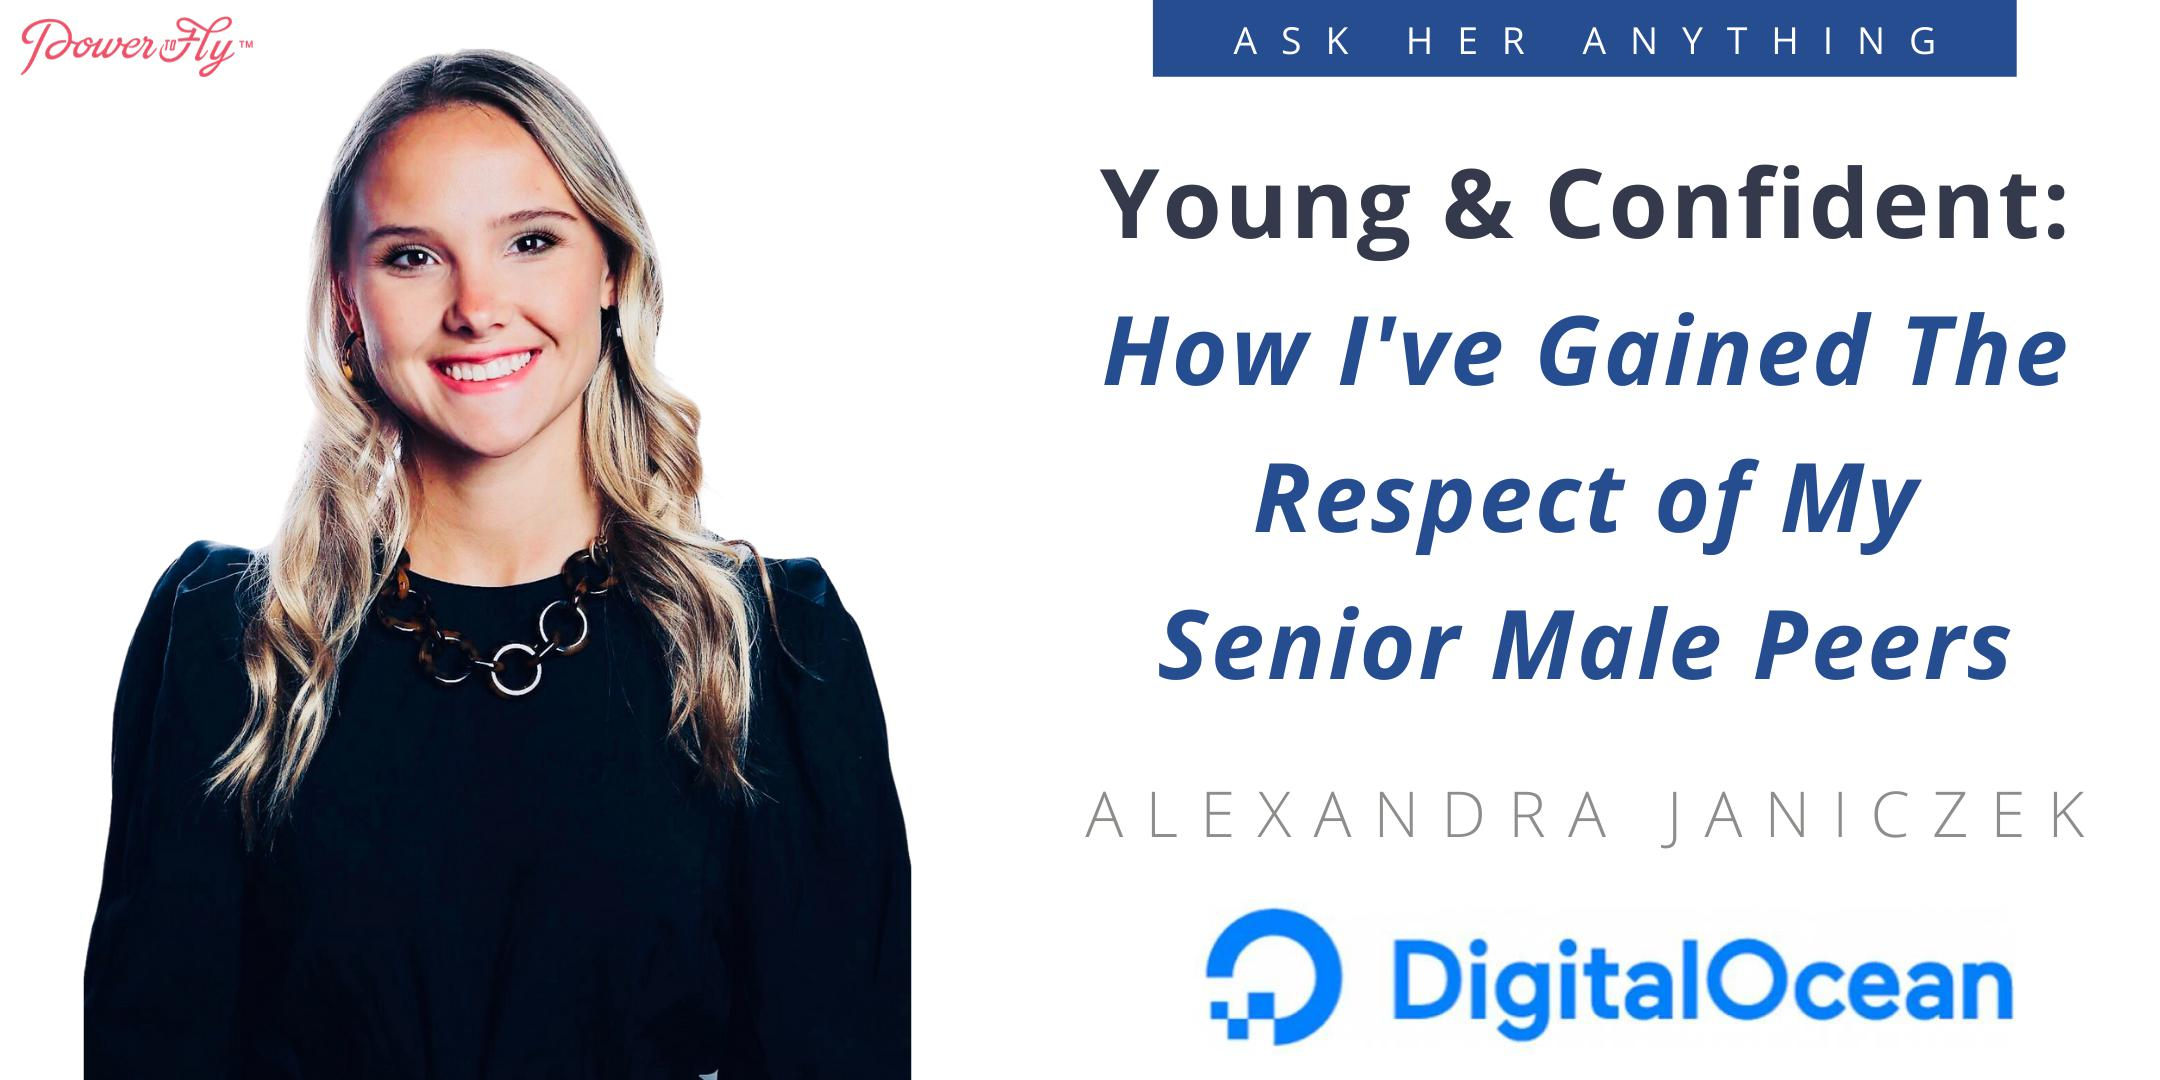 Young & Confident: How I've Gained The Respect of My Senior Male Peers